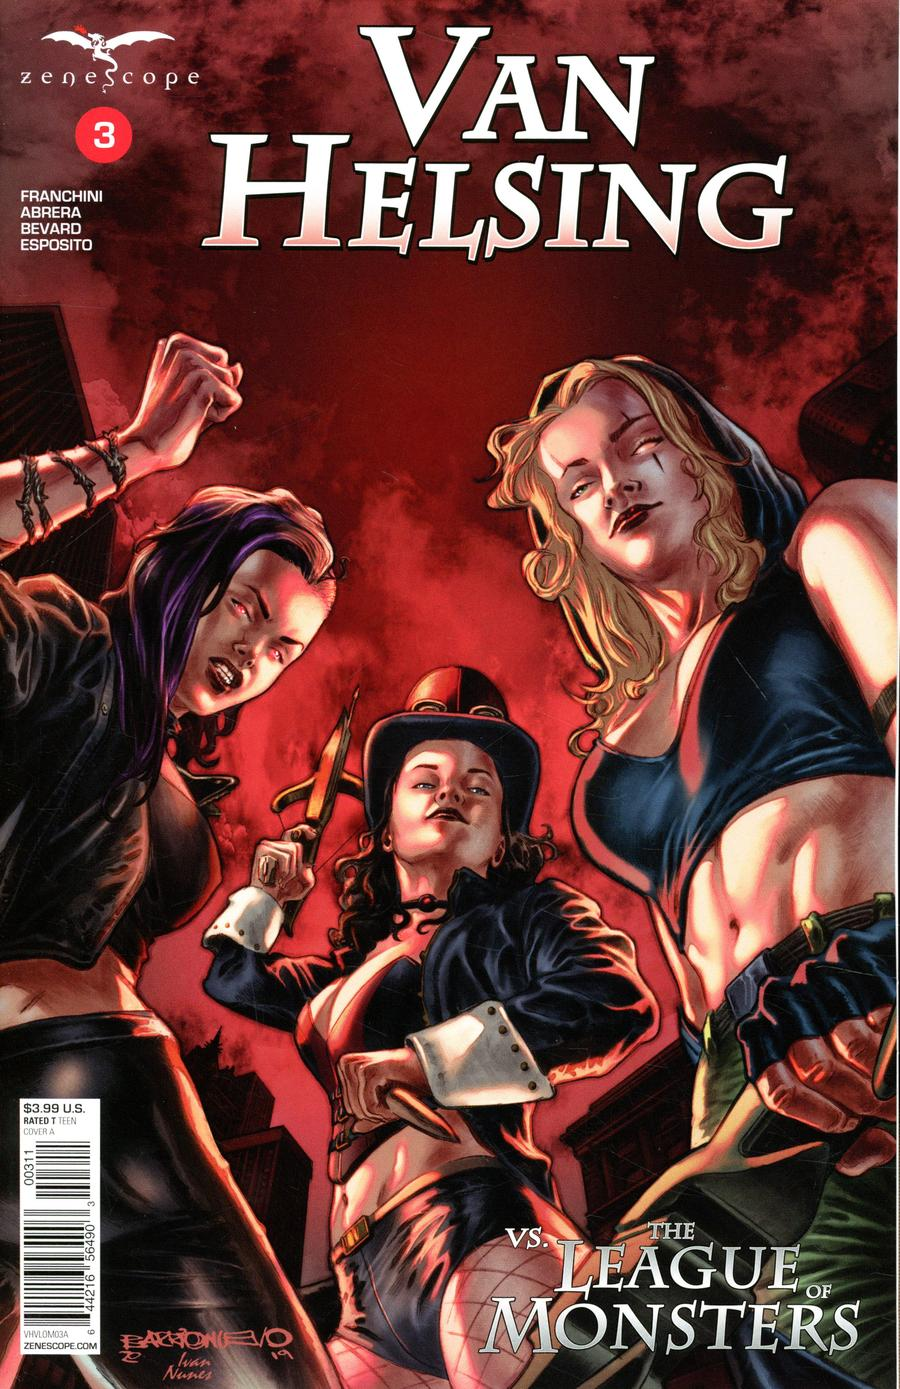 Grimm Fairy Tales Presents Van Helsing vs The League Of Monsters #3 Cover A Al Barrionuevo